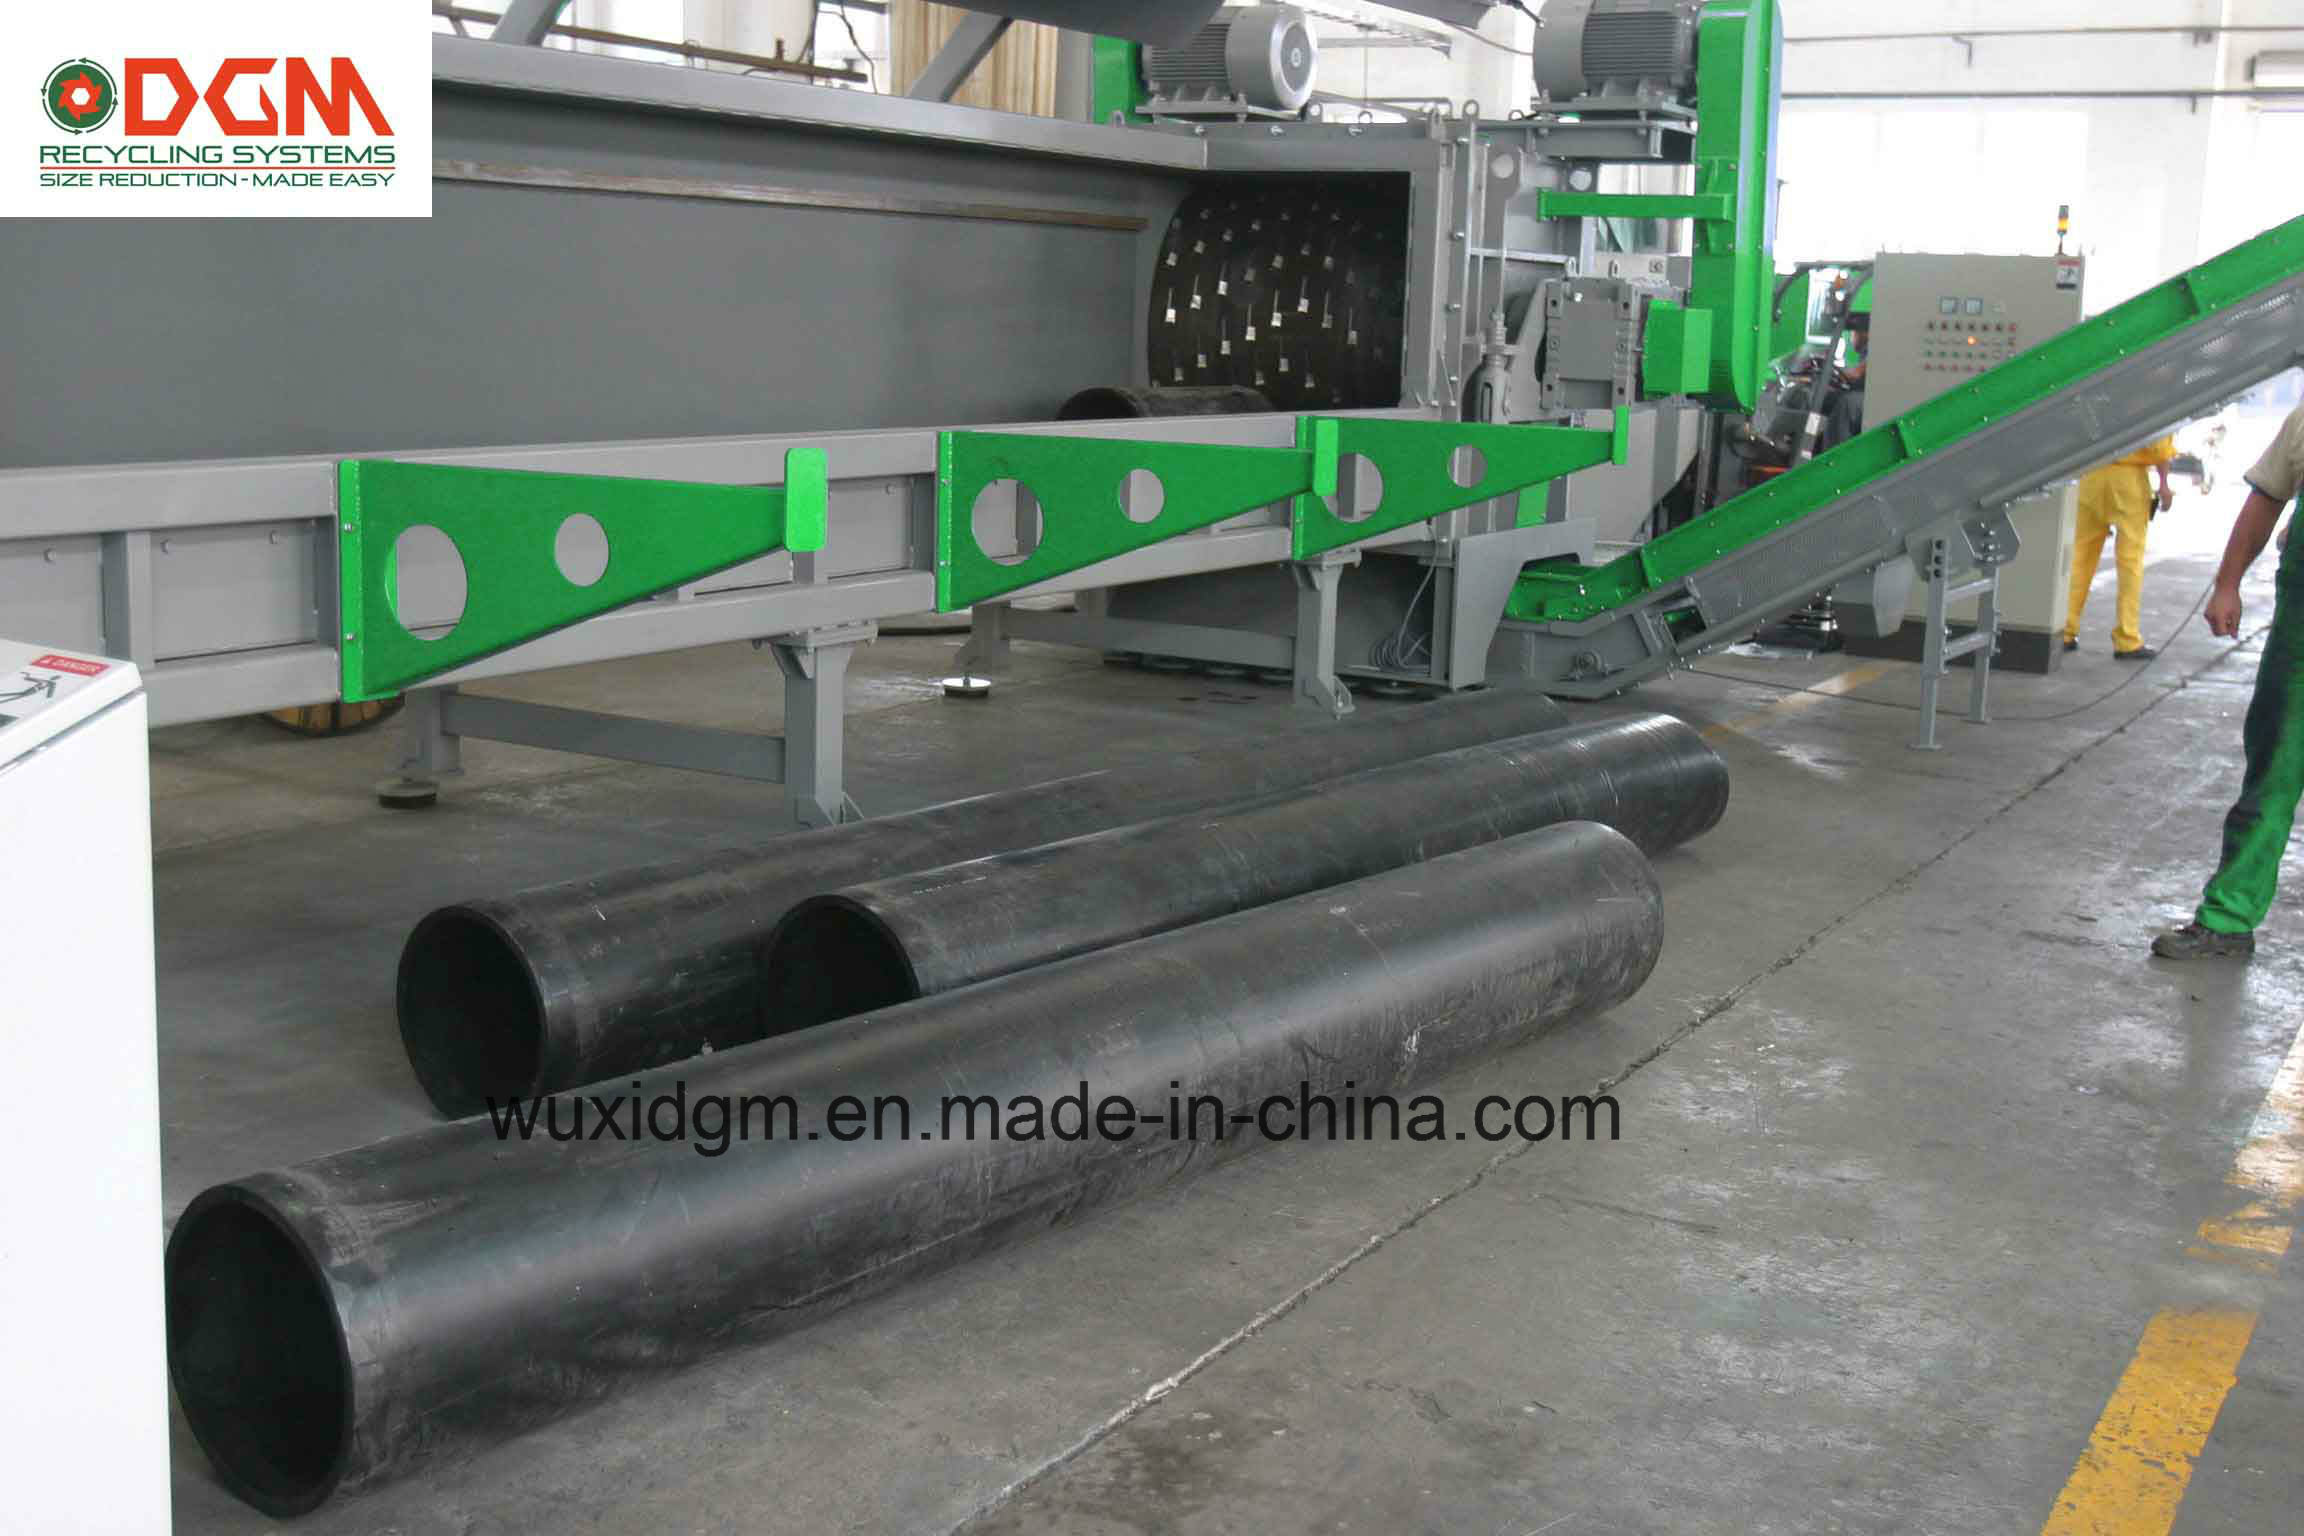 Dgr1500 Pipe Profile Shredders Increase Value of Your Pipe